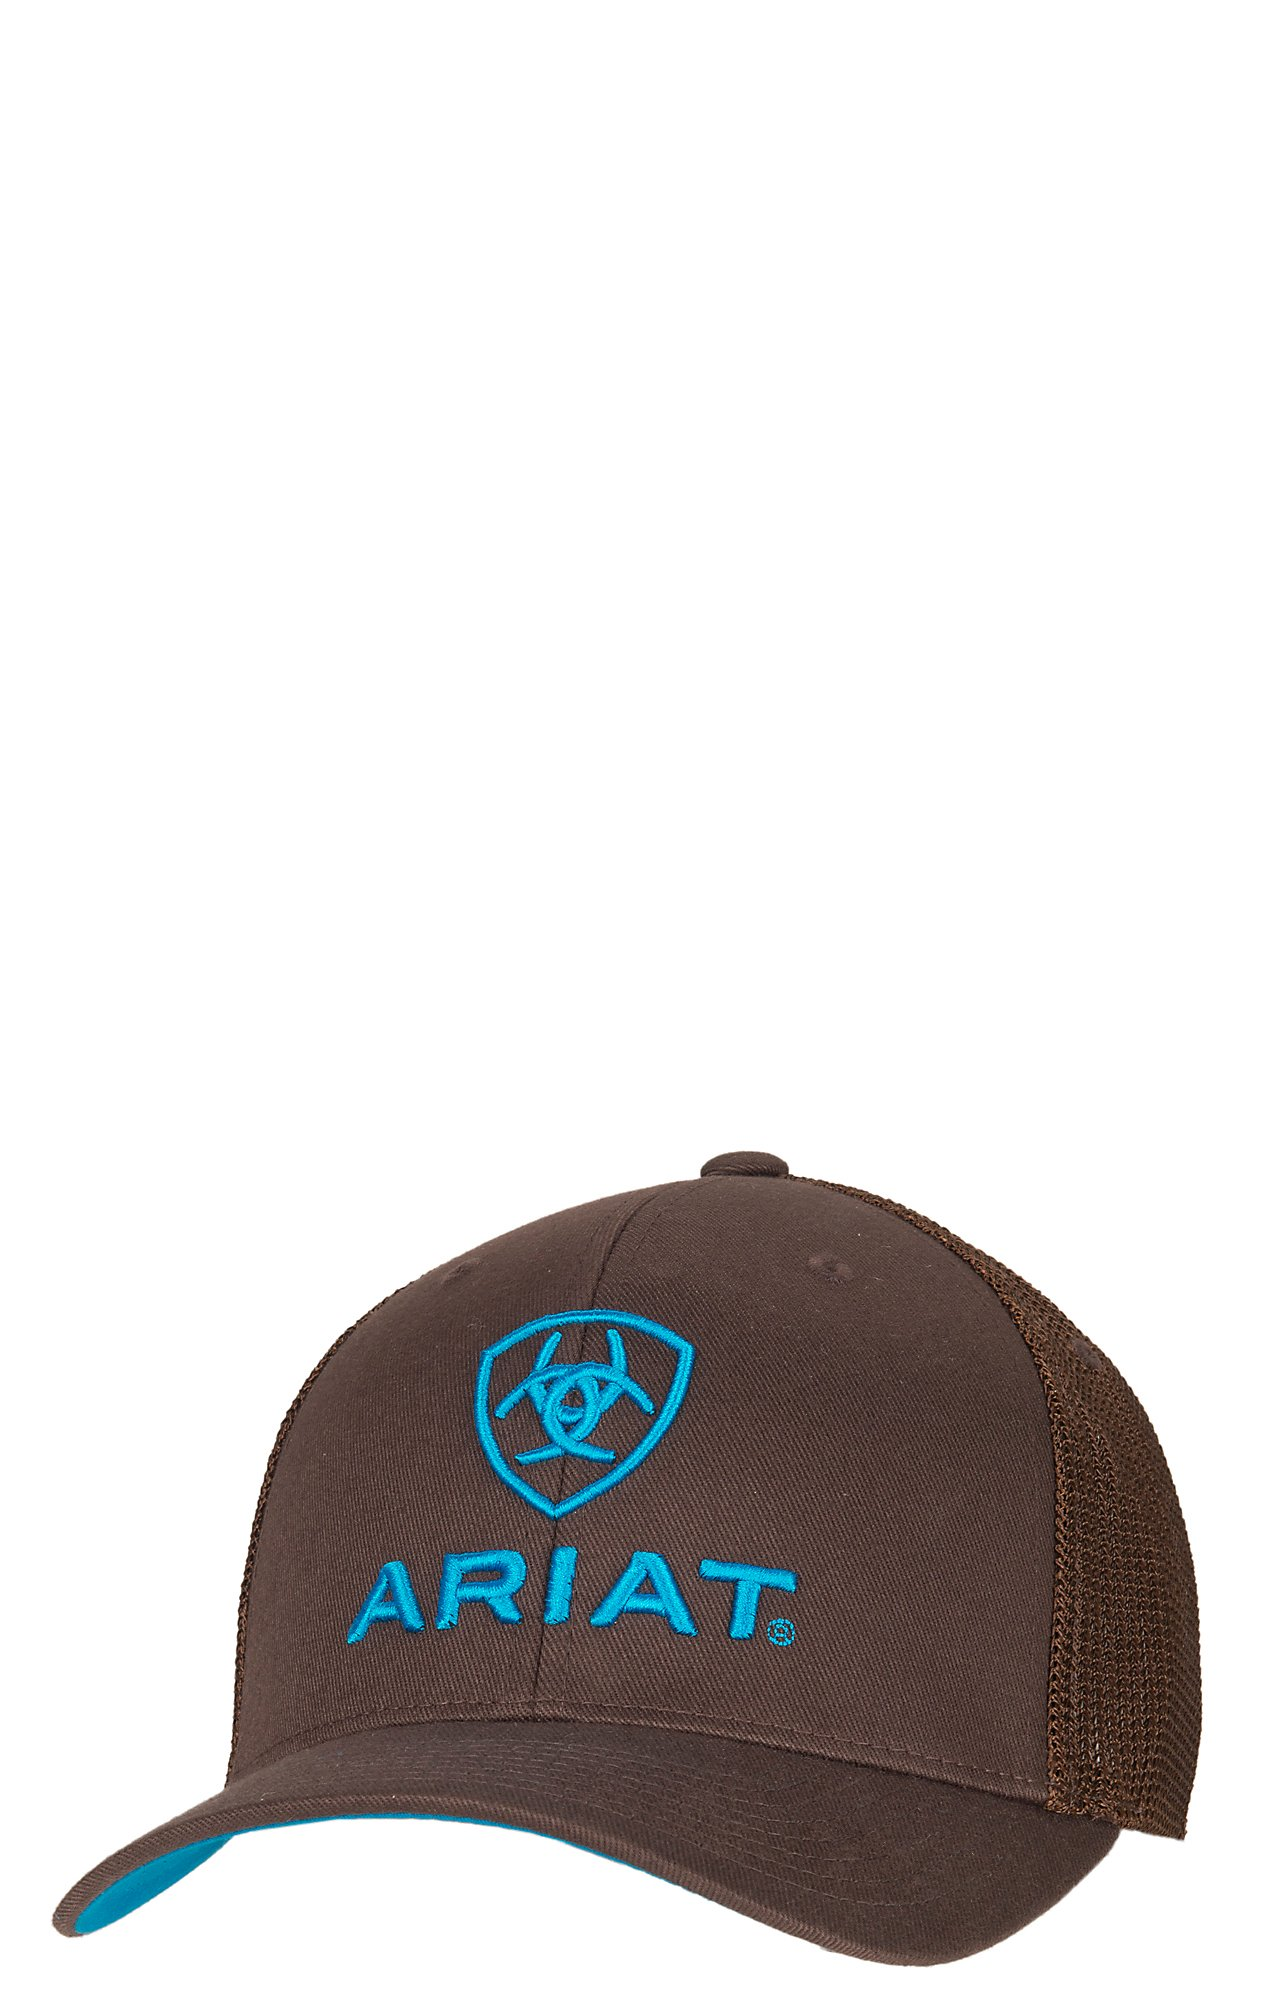 Ariat Brown with Turquoise Logos Mesh Side Flex Fit Cap  90f57aff8af9